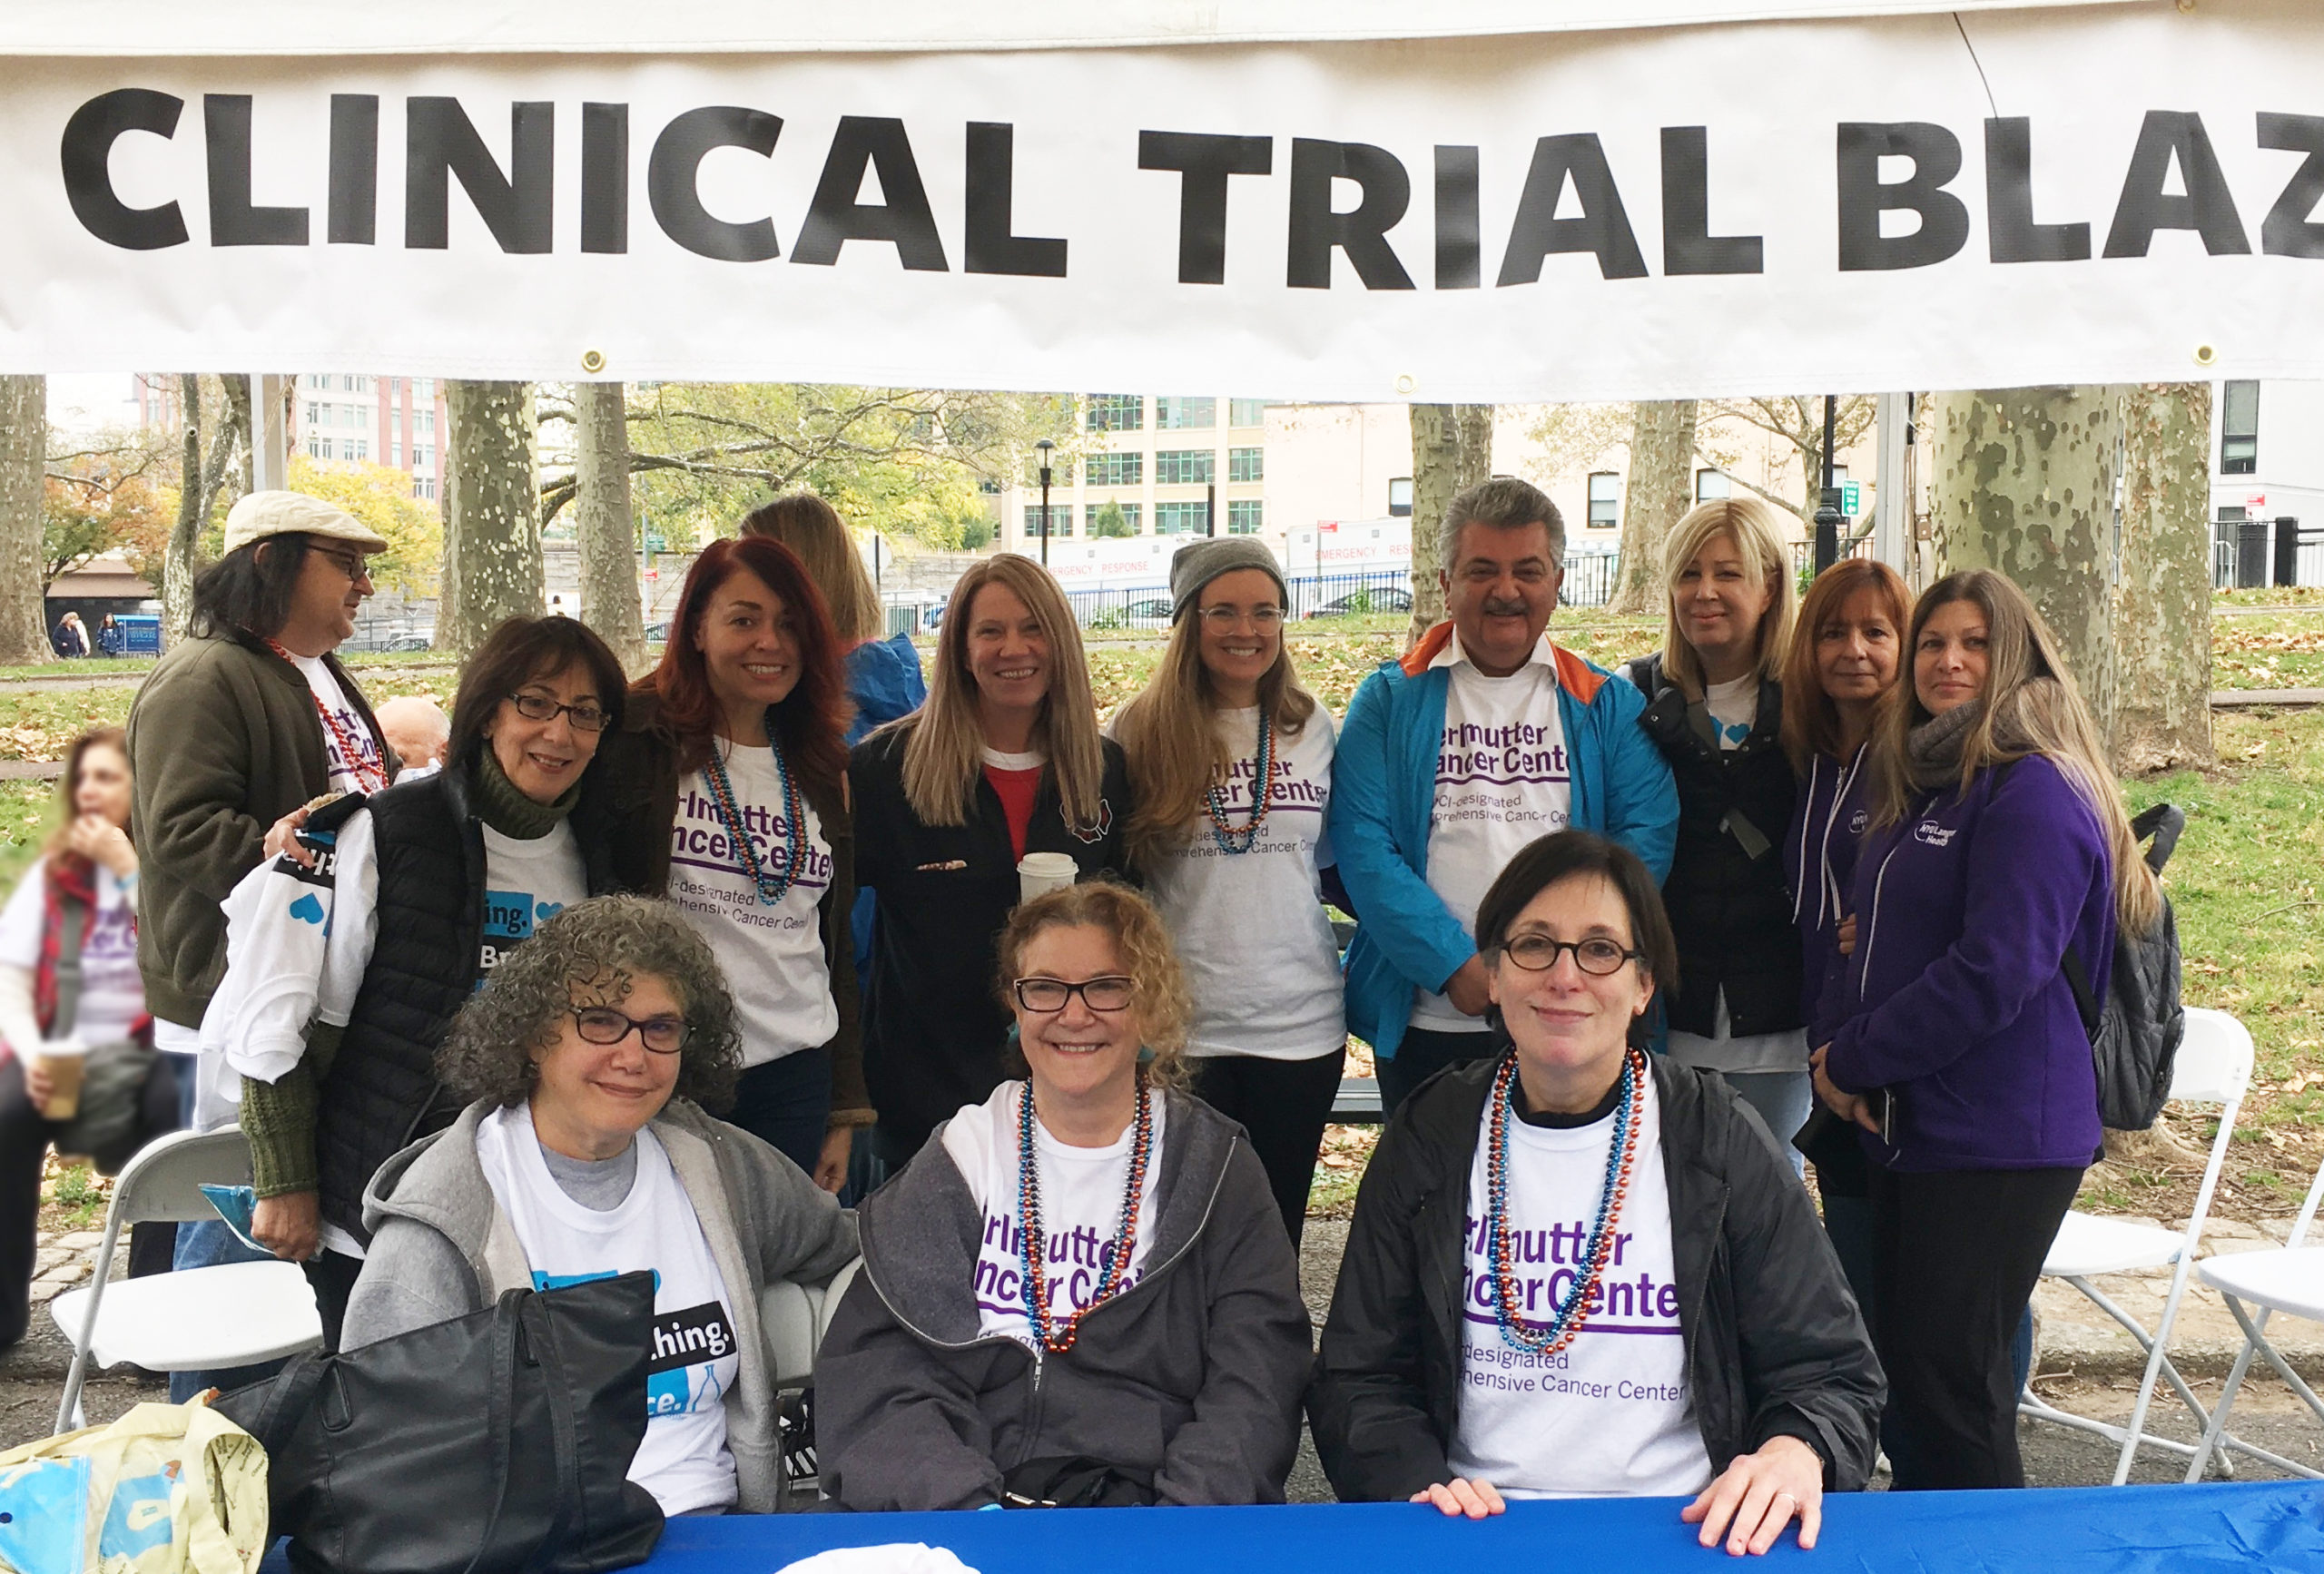 Team captain grows Clinical Trial Blazers to 175+ members